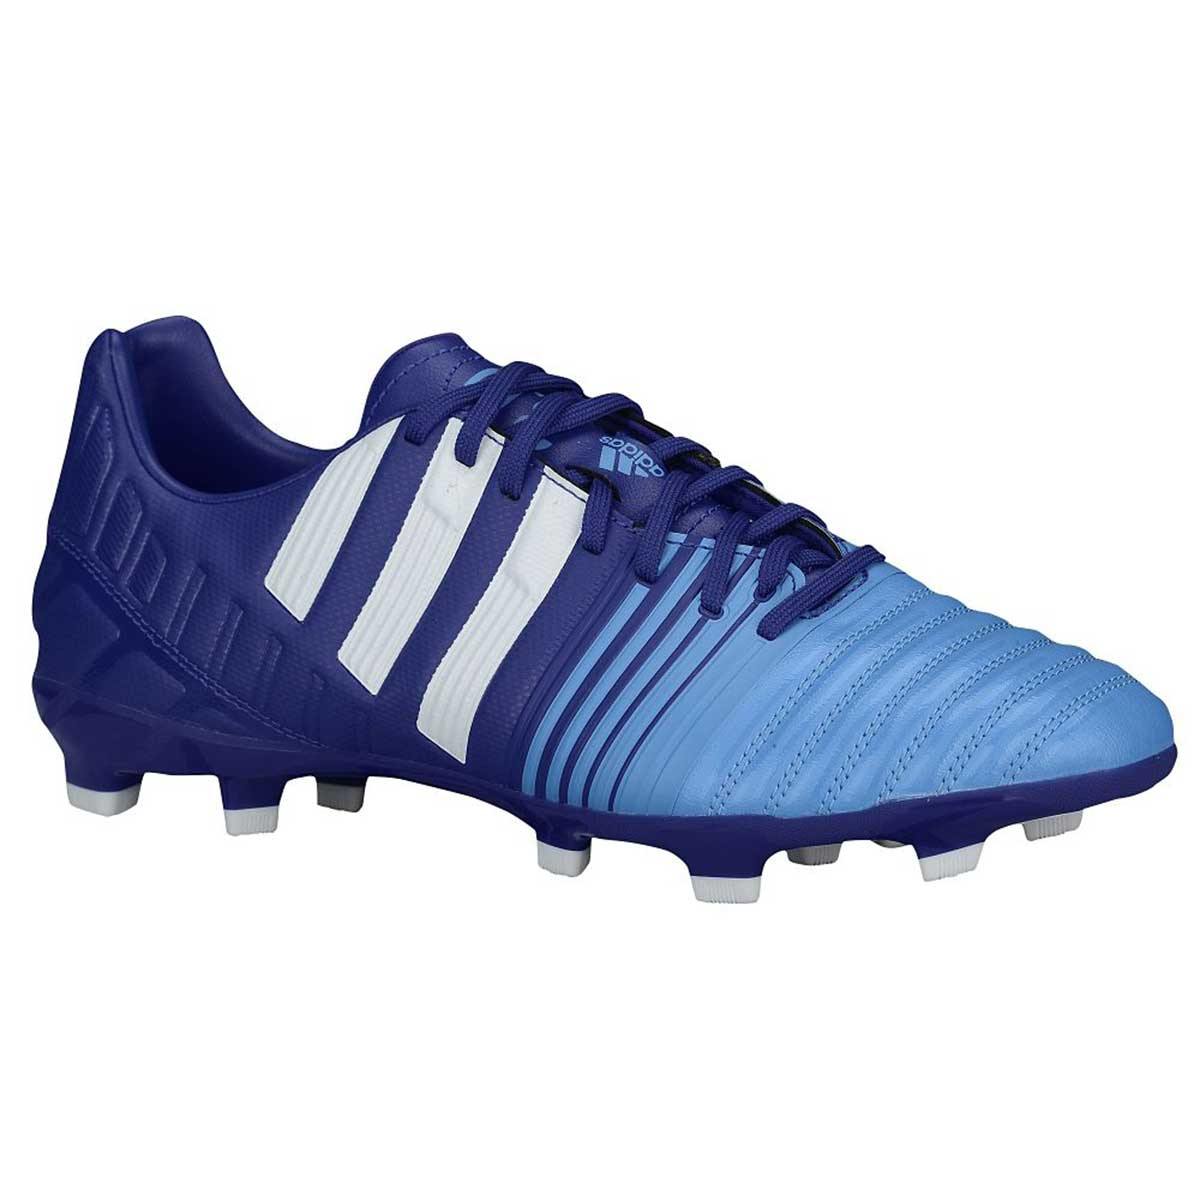 Football Shoes, Football, Sports, Buy, Adidas, Adidas Nitrocharge 3.0 FG Football  Shoes , ,